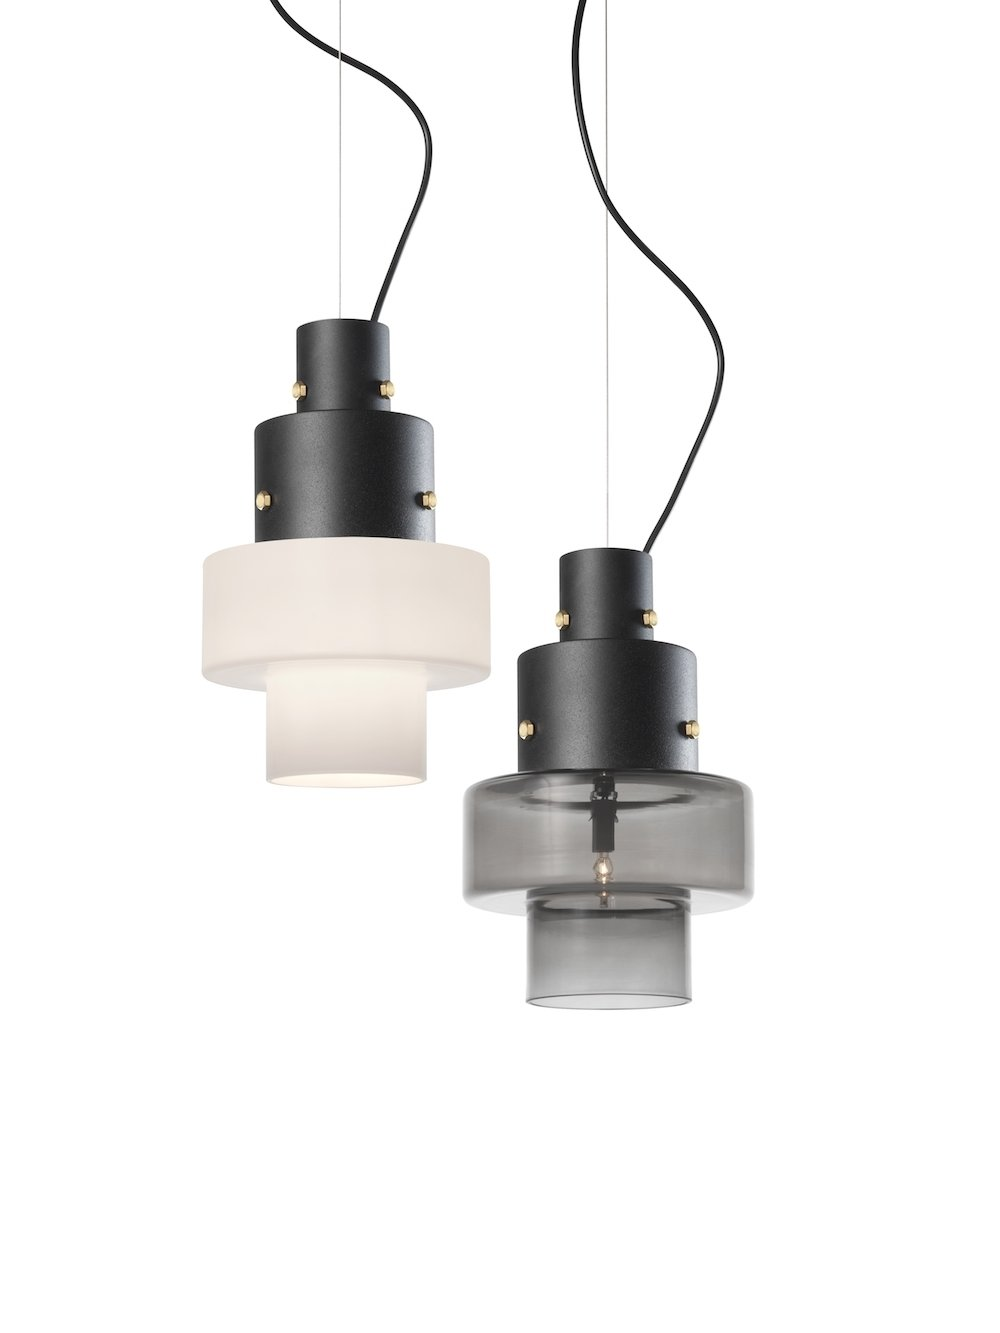 A whopping 12 new lighting designs will be shown at Foscarini, including pieces by Ludovica and Roberto Palomba, LucidiPevere, and a continuation of the company's collaboration with Diesel Living (shown here). 17 Greene Street  60+ Modern Lighting Solutions by Dwell from Things to See at ICFF 2014 and NYC Design Week